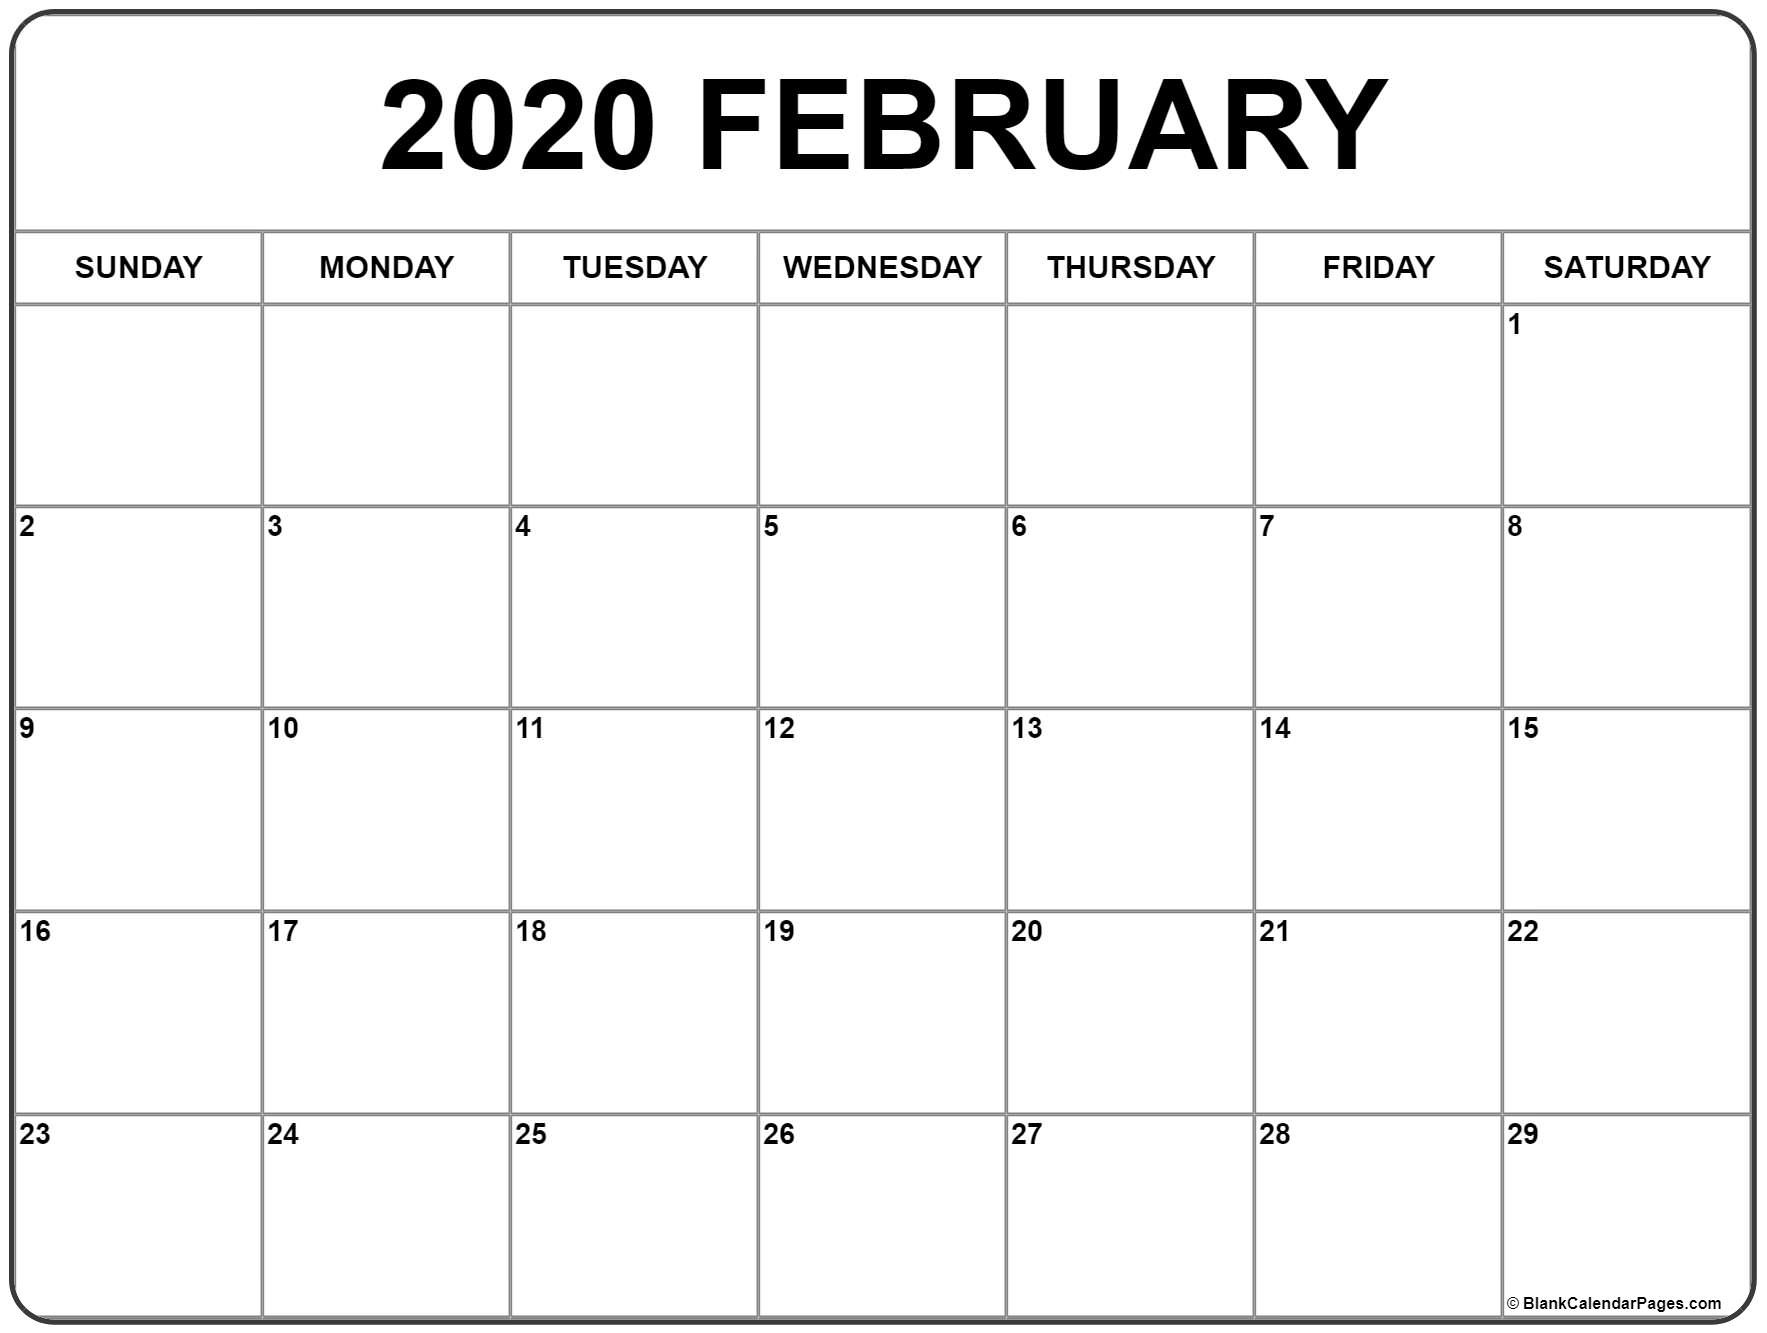 February 2020 Calendar | Free Printable Monthly Calendars  February 2020 Calendar Printable